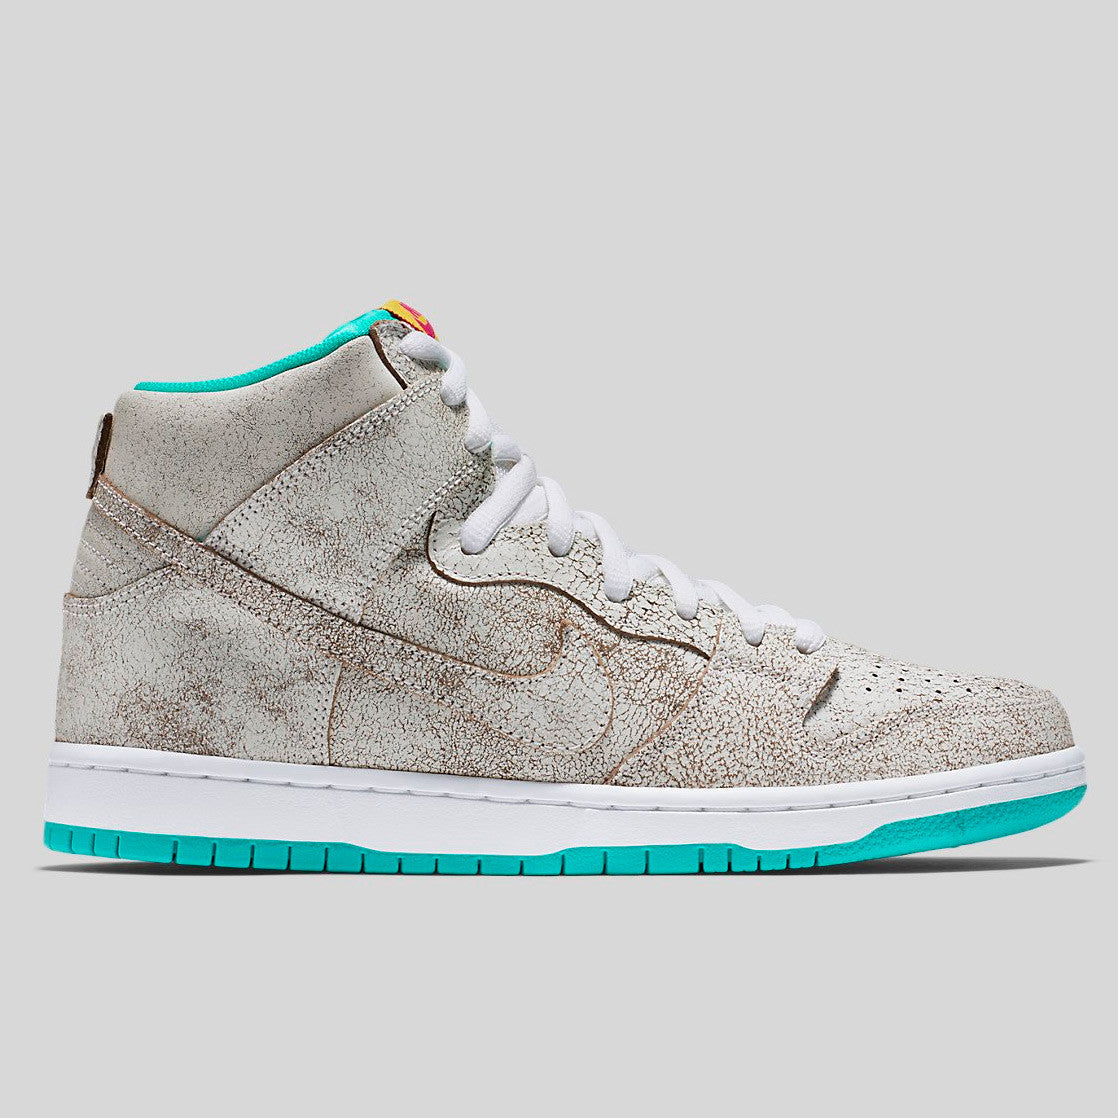 Nike Dunk High Premium SB Flamingo